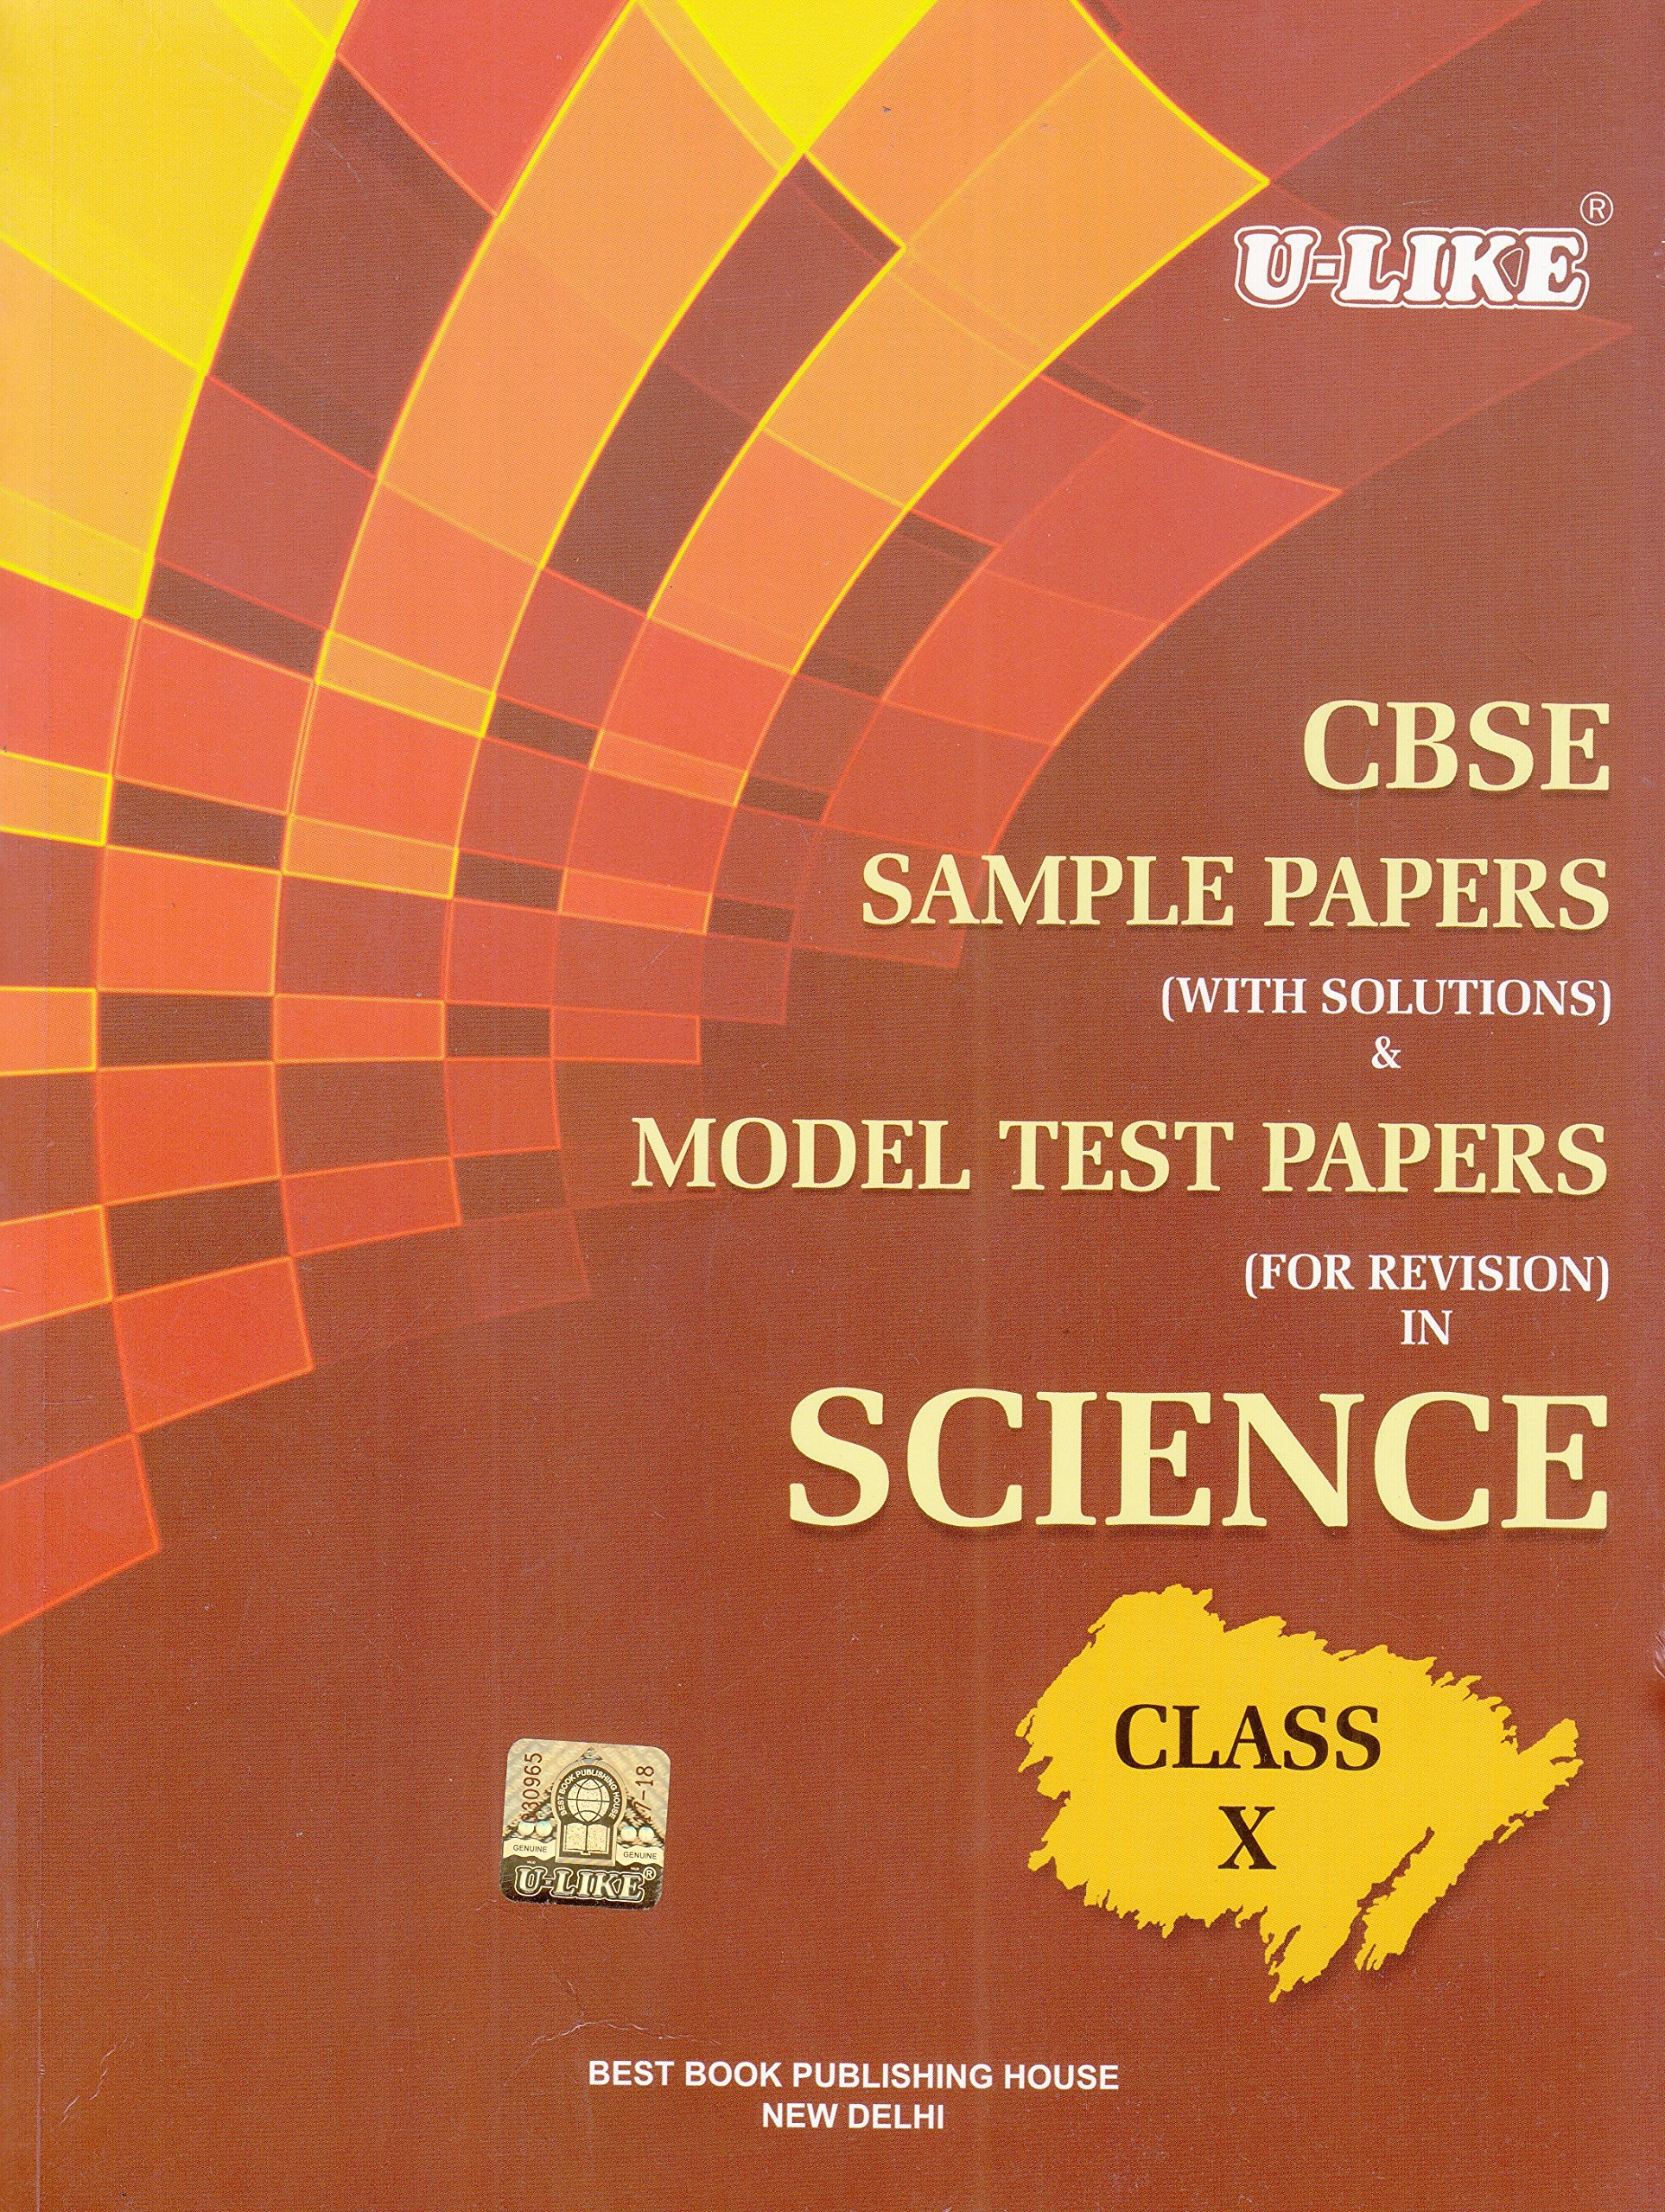 U-Like CBSE Science Sample Papers with Solutions for Class 10